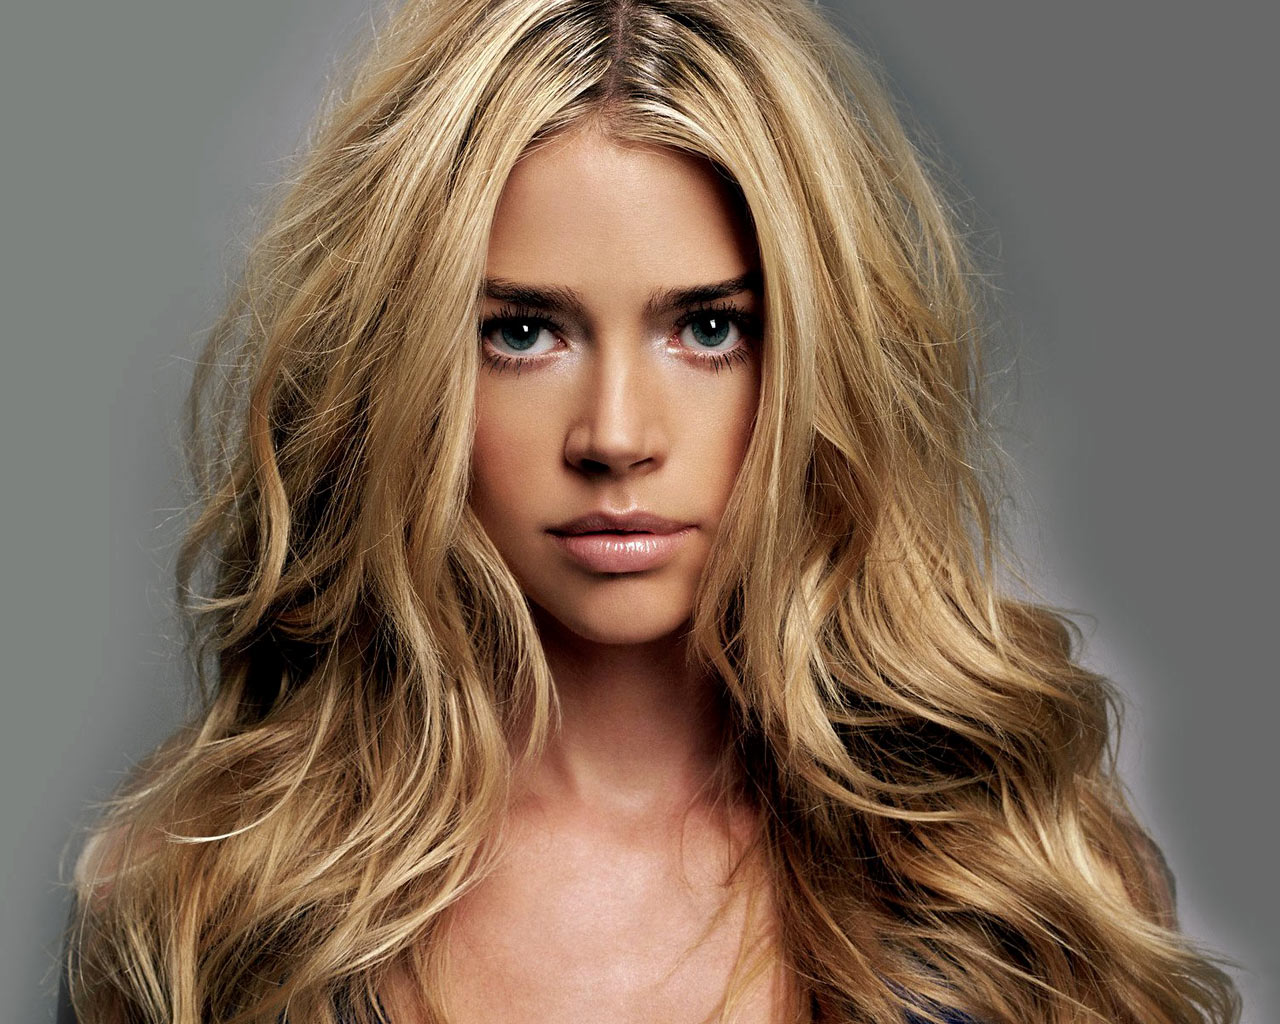 Ceelebrities: Denise Richards Sexiest Wallpapers,Images